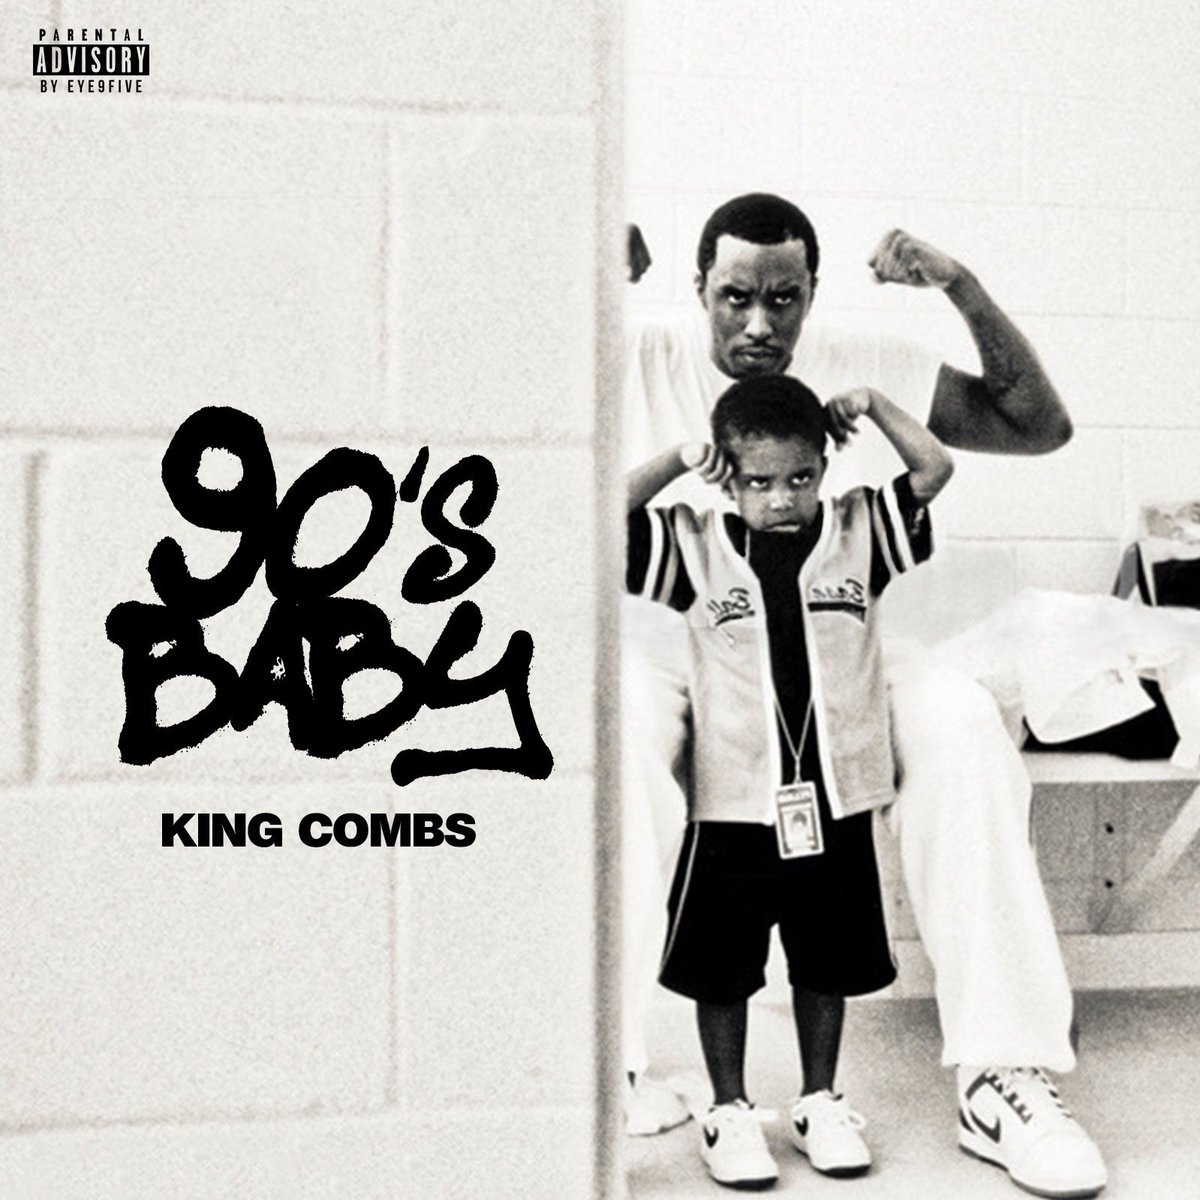 RT @Missinfo: Stream @Kingcombs' '90s Baby' project featuring @Diddy & more: https://t.co/LhQ9kqS2r8  https://t.co/a9fJovWnwk